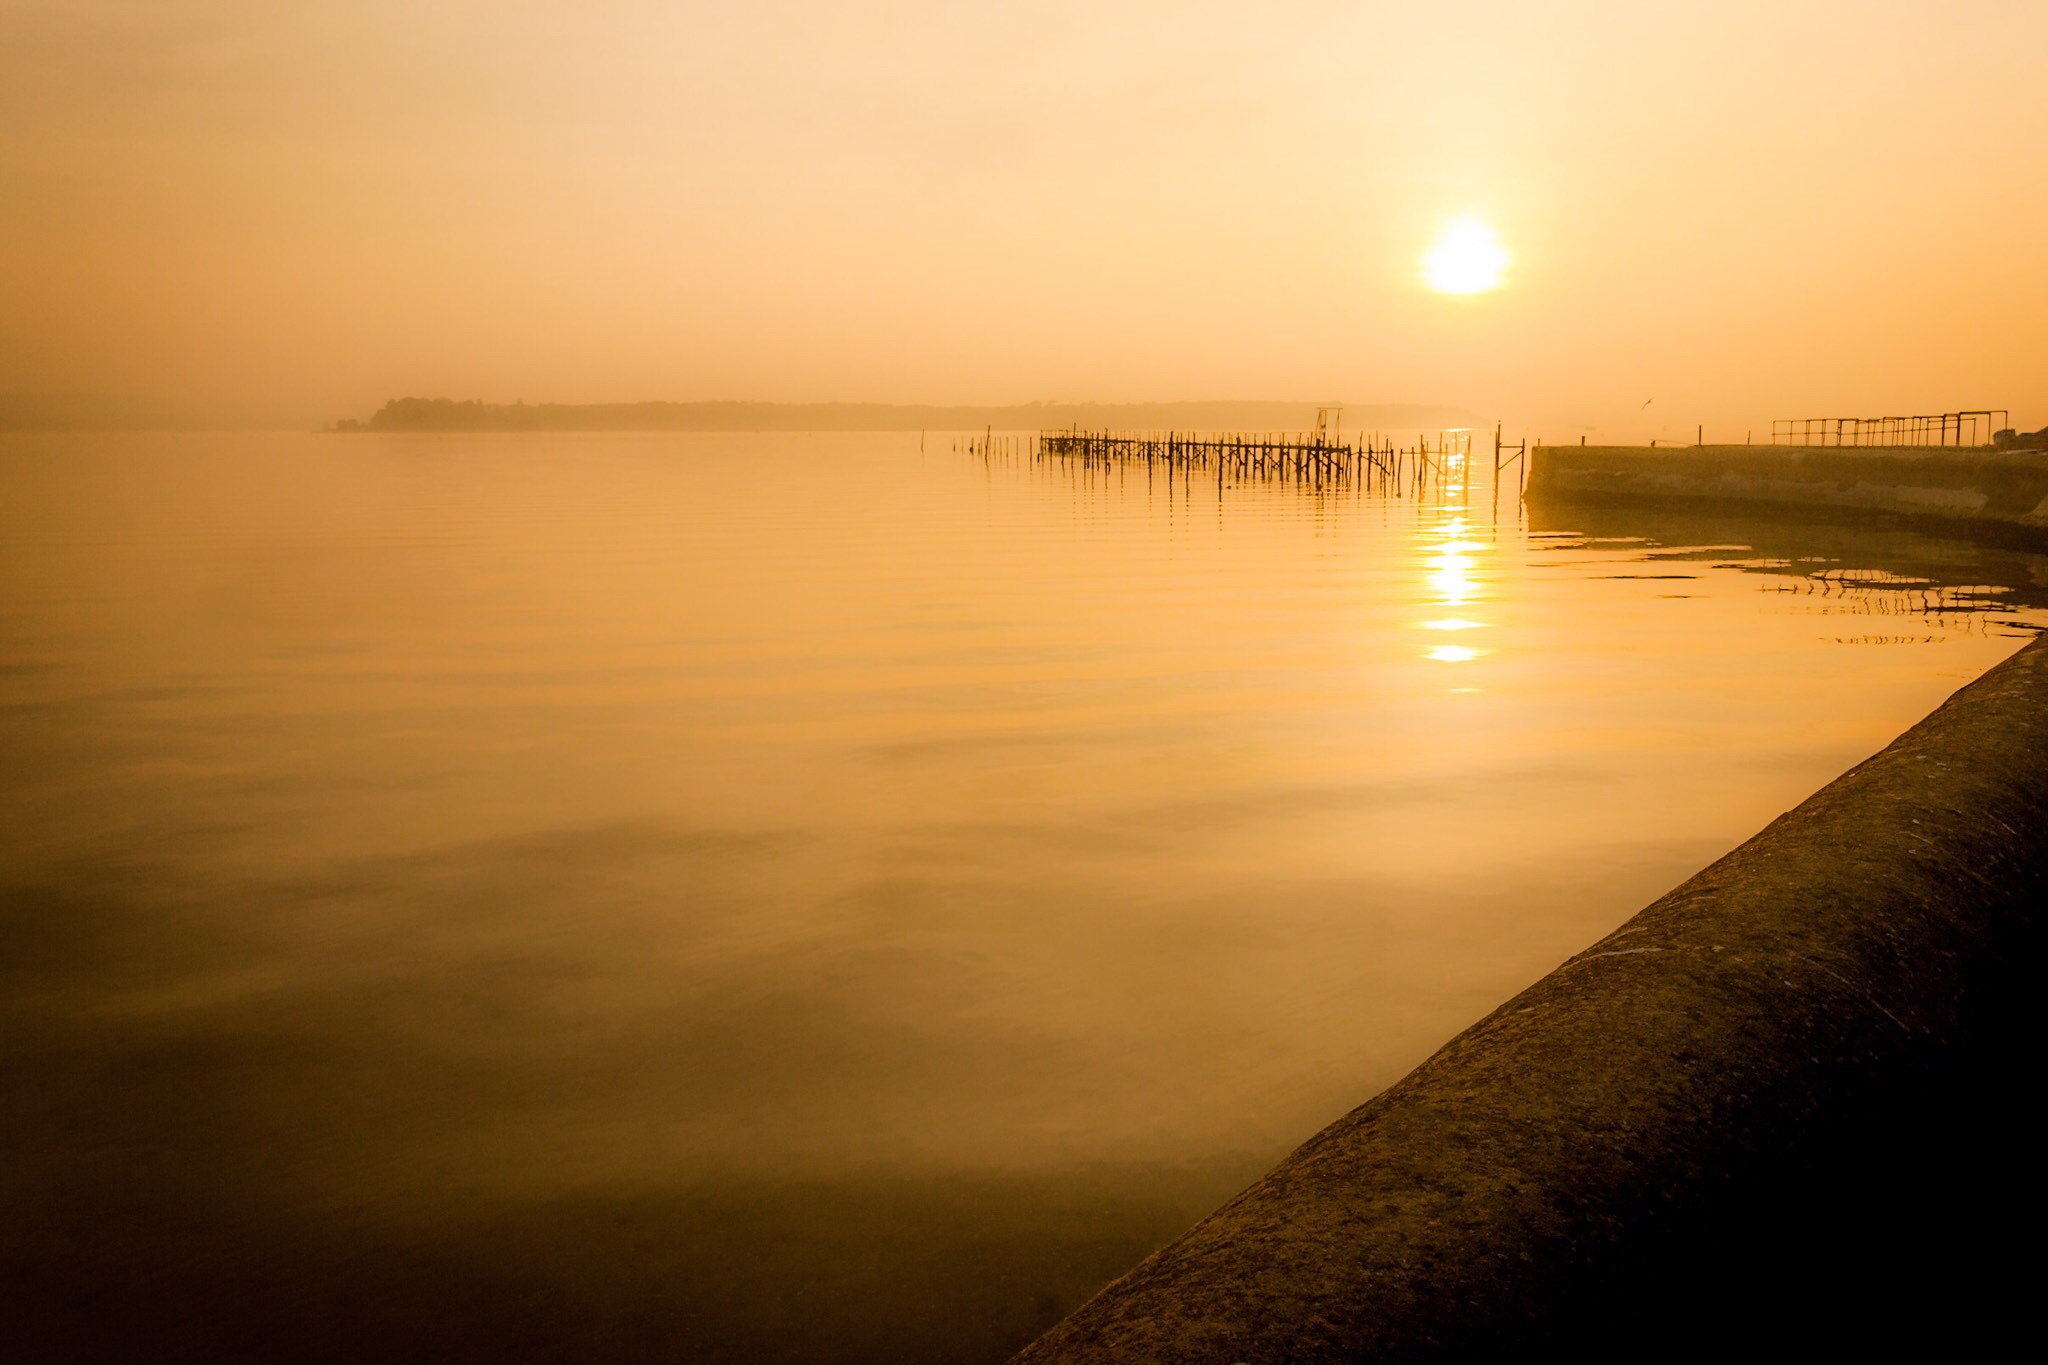 A lovely warm glowing sunset picture of Sandbanks in Dorset